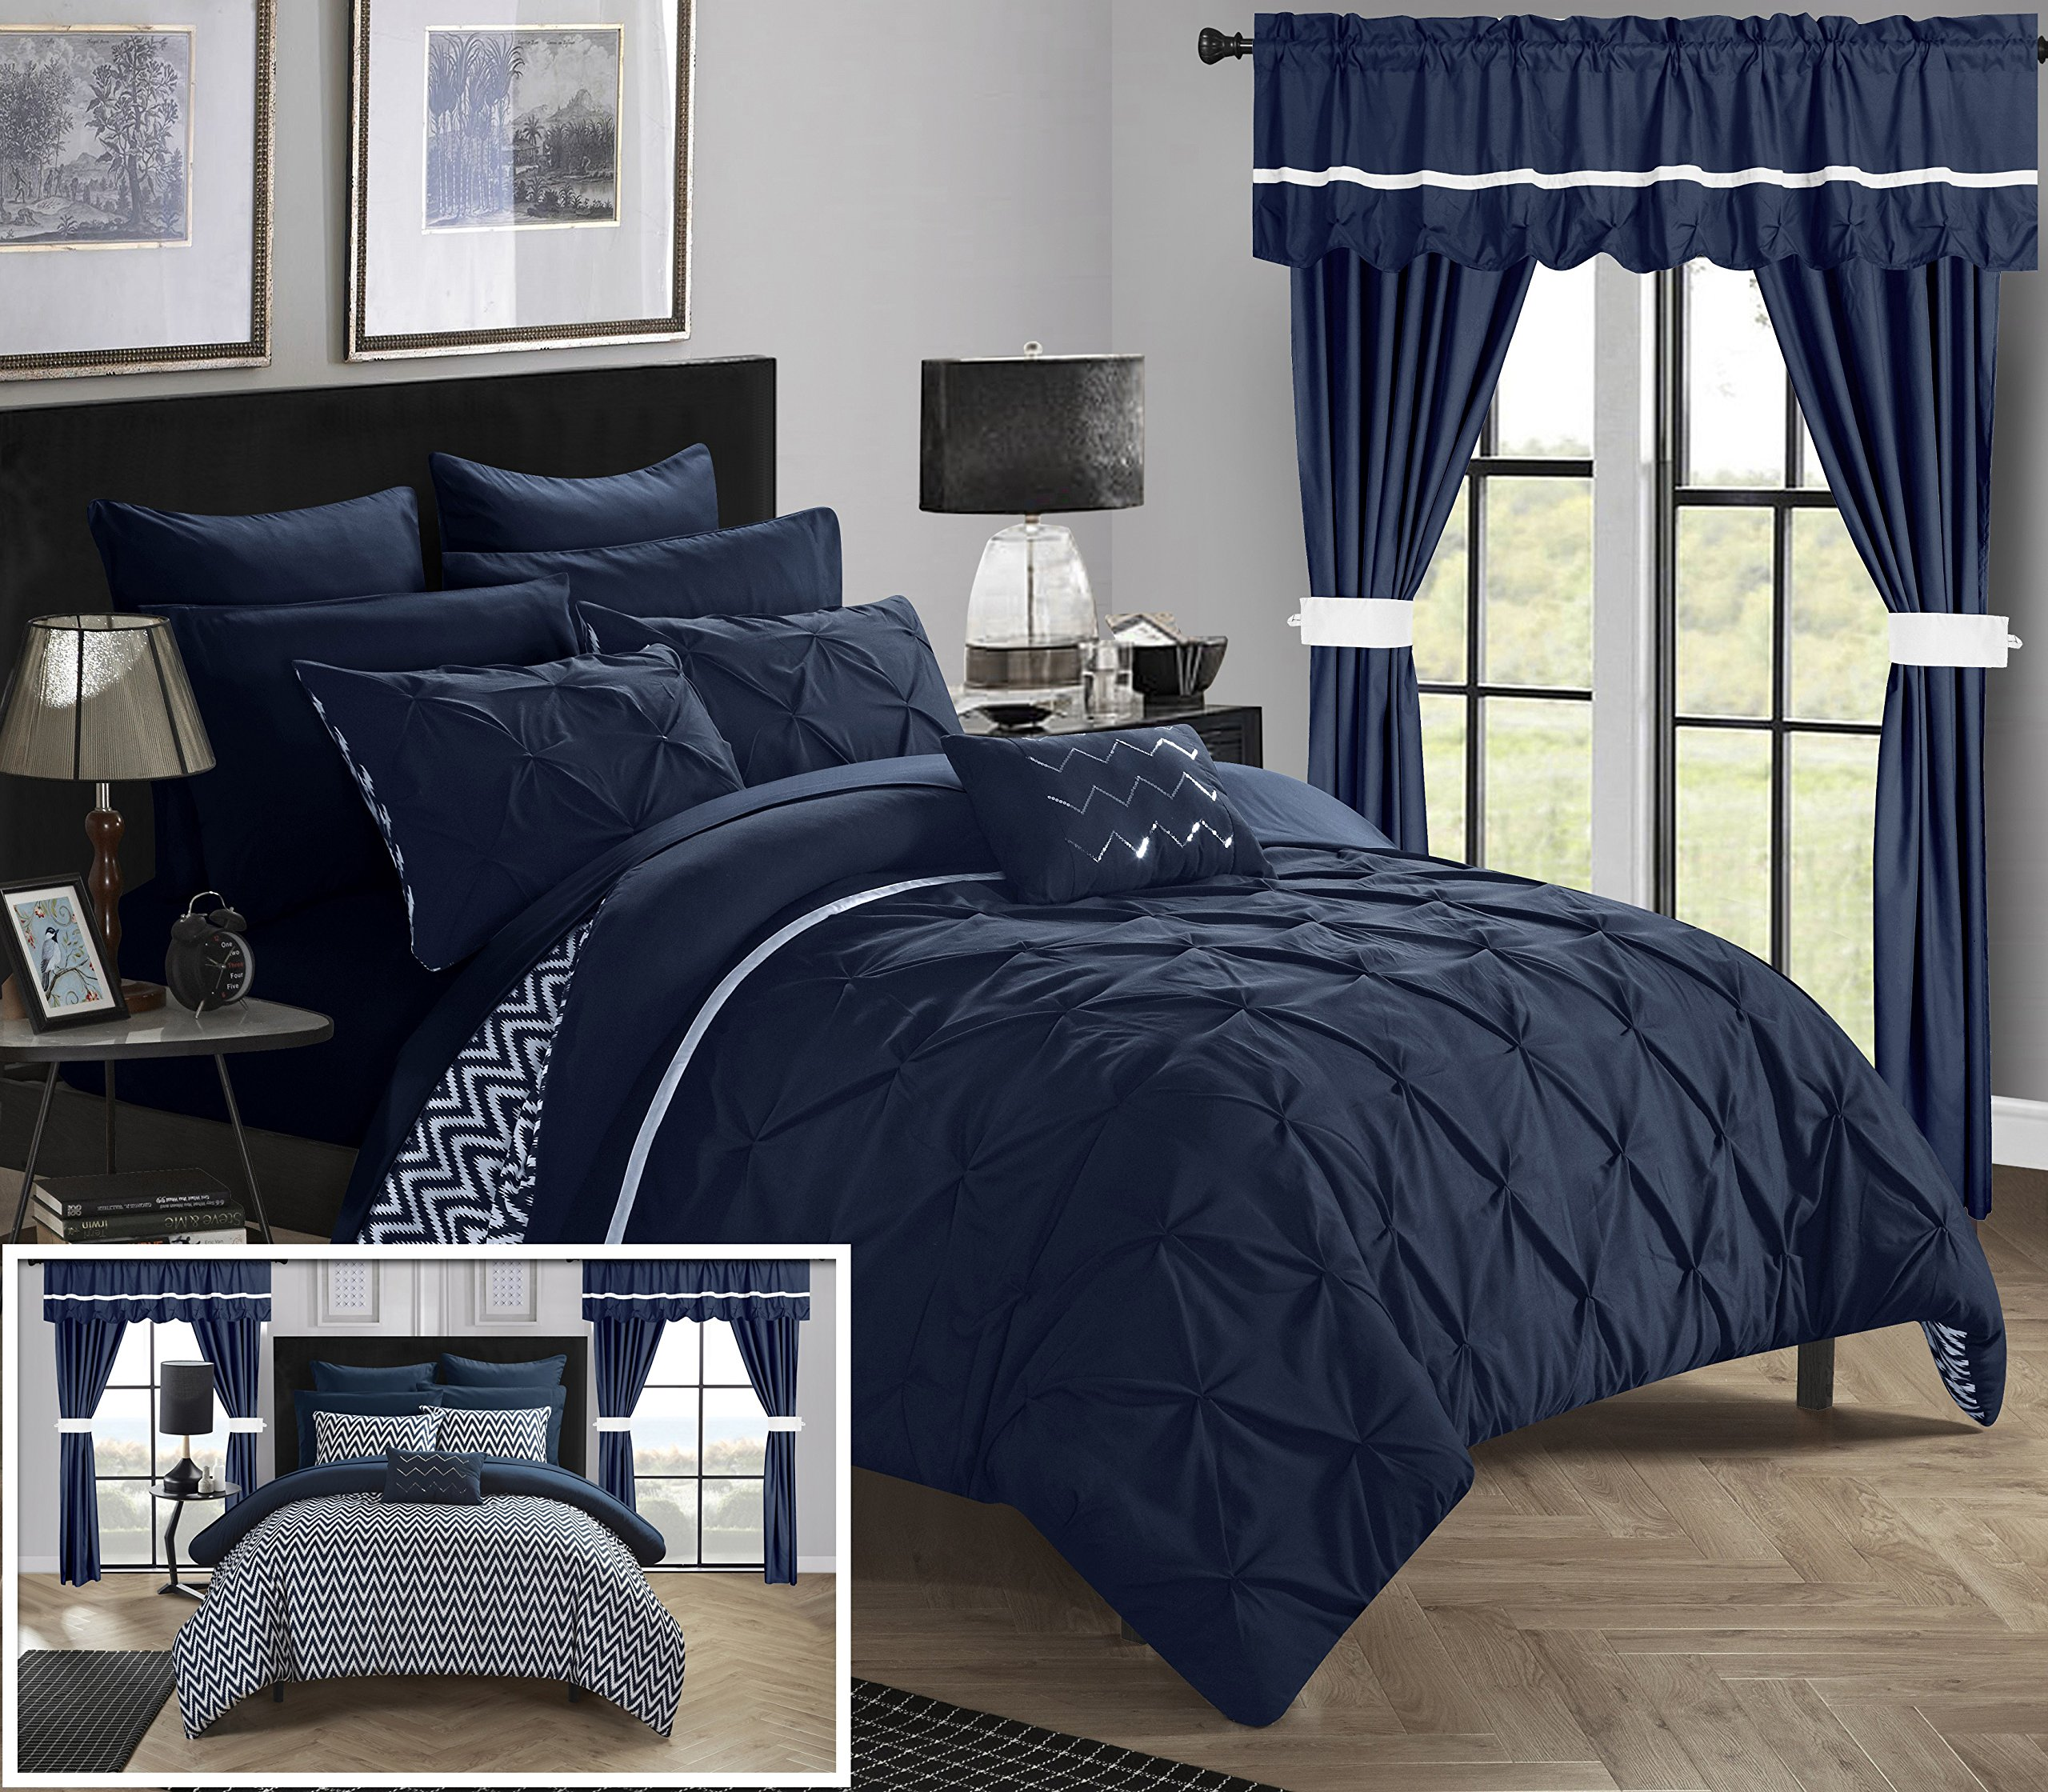 Chic Home CS0574-AN 20 Piece Jacksonville Complete Bed Room In A Bag Super Pinch Pleated Design Reversible Chevron Pattern Comforter Set, Sheets Window Treatments And Decorative Pillows, King, Navy by Chic Home